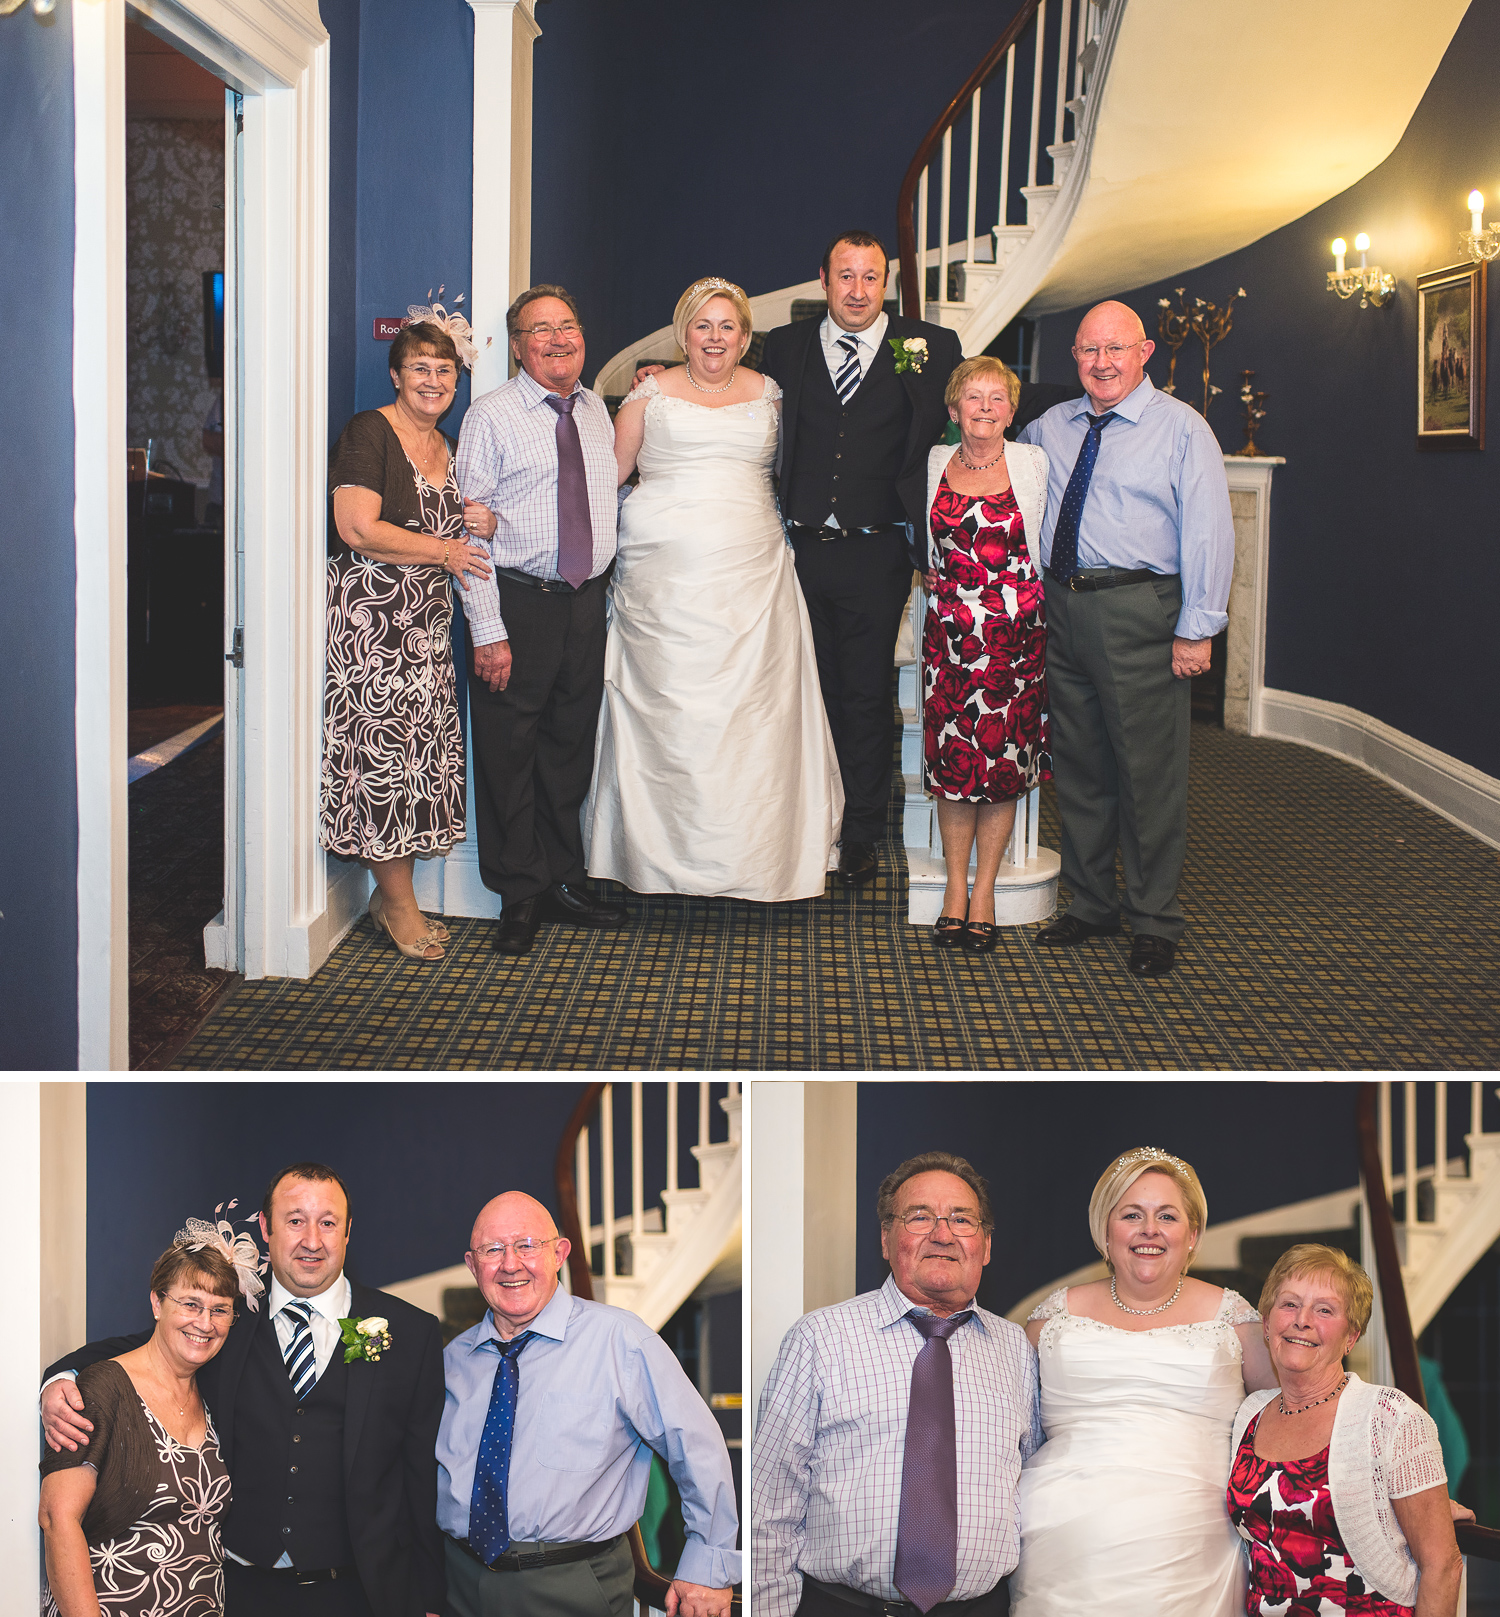 group-wedding-photography-christchurch-dorset.jpg